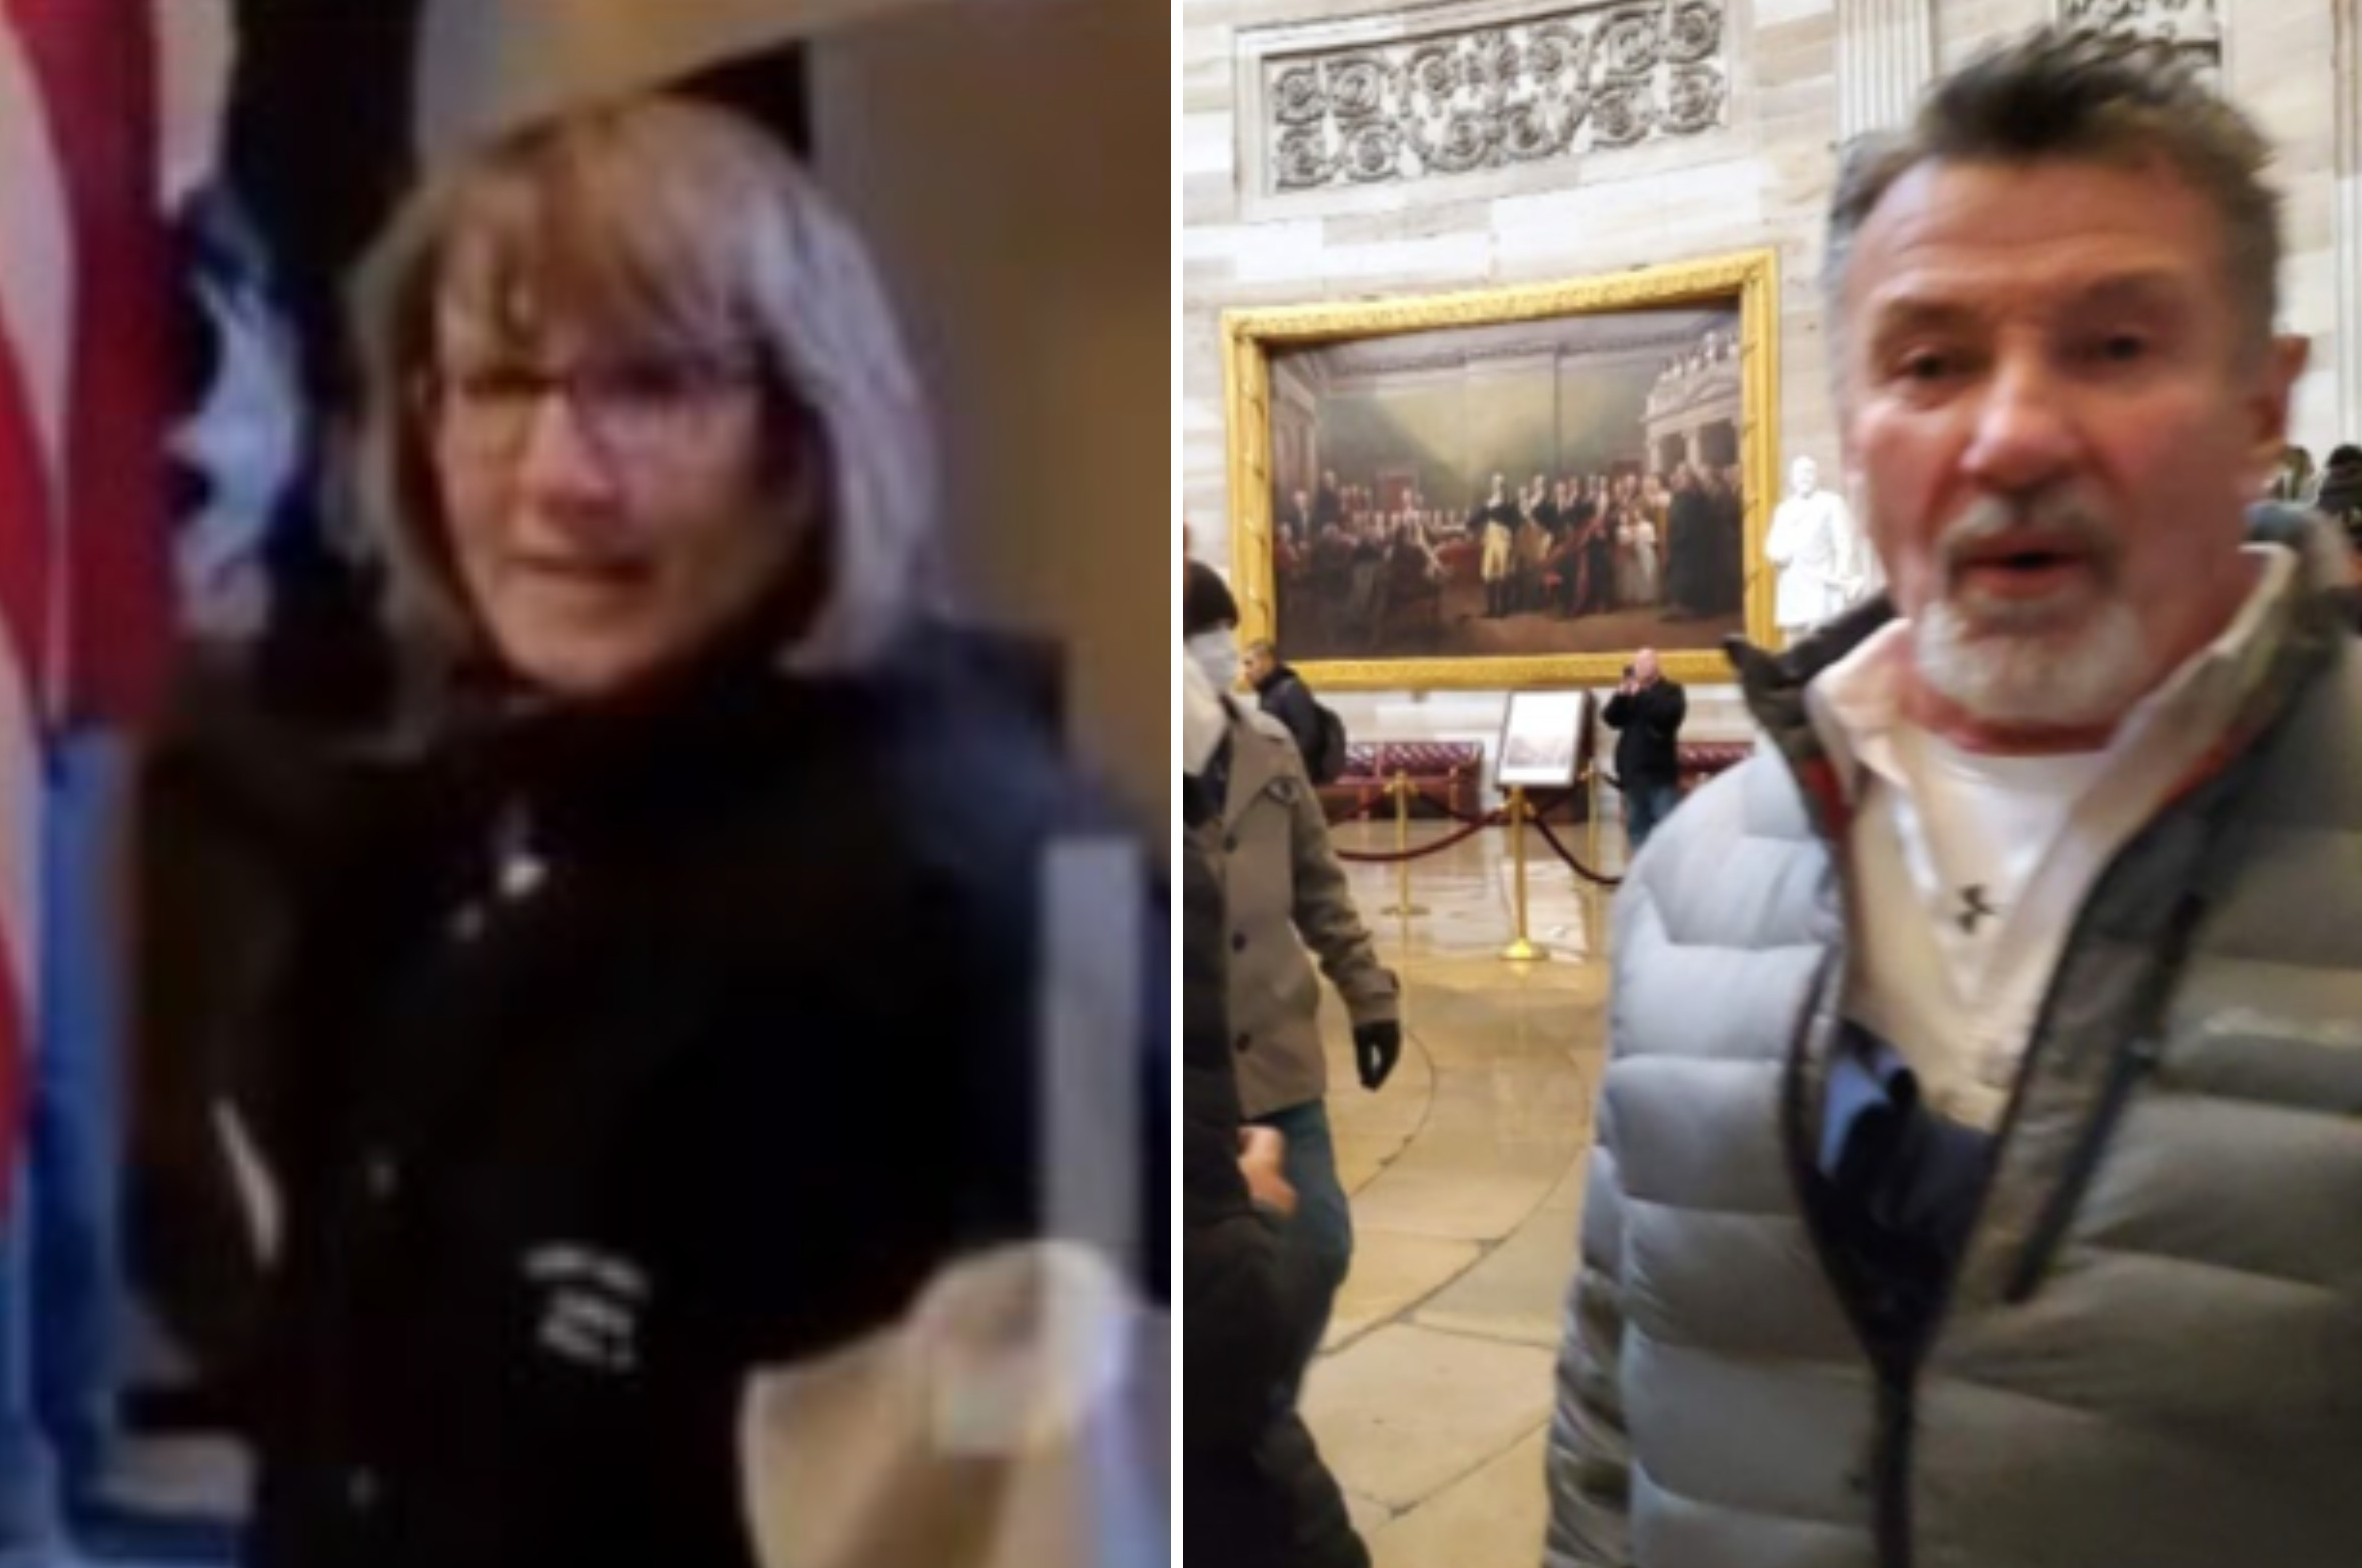 Couple Charged Over Capitol Riot After Being Identified in YouTube Video